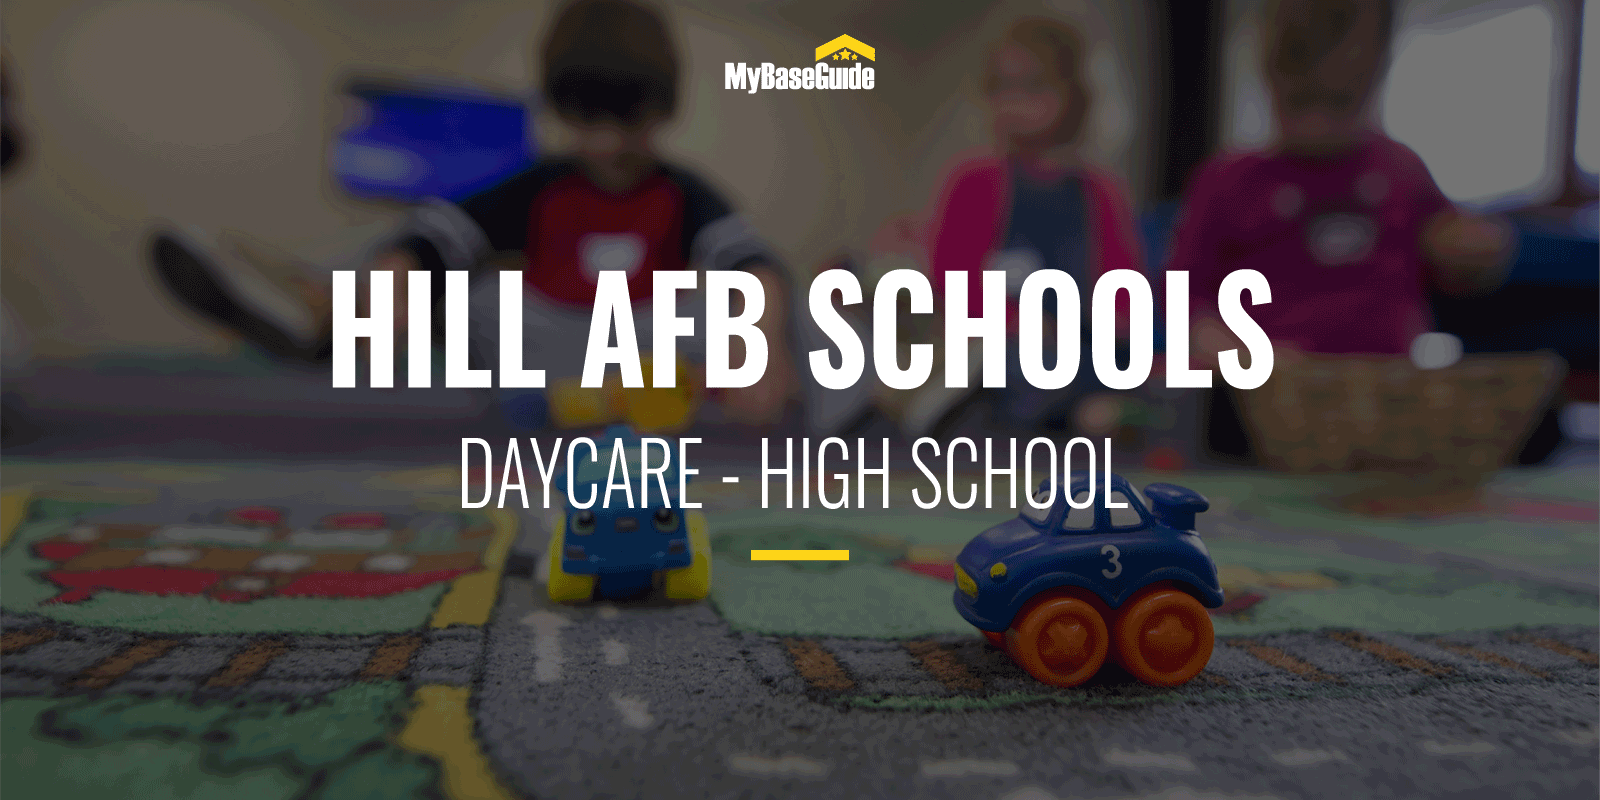 Hill AFB Schools: Daycare - High School